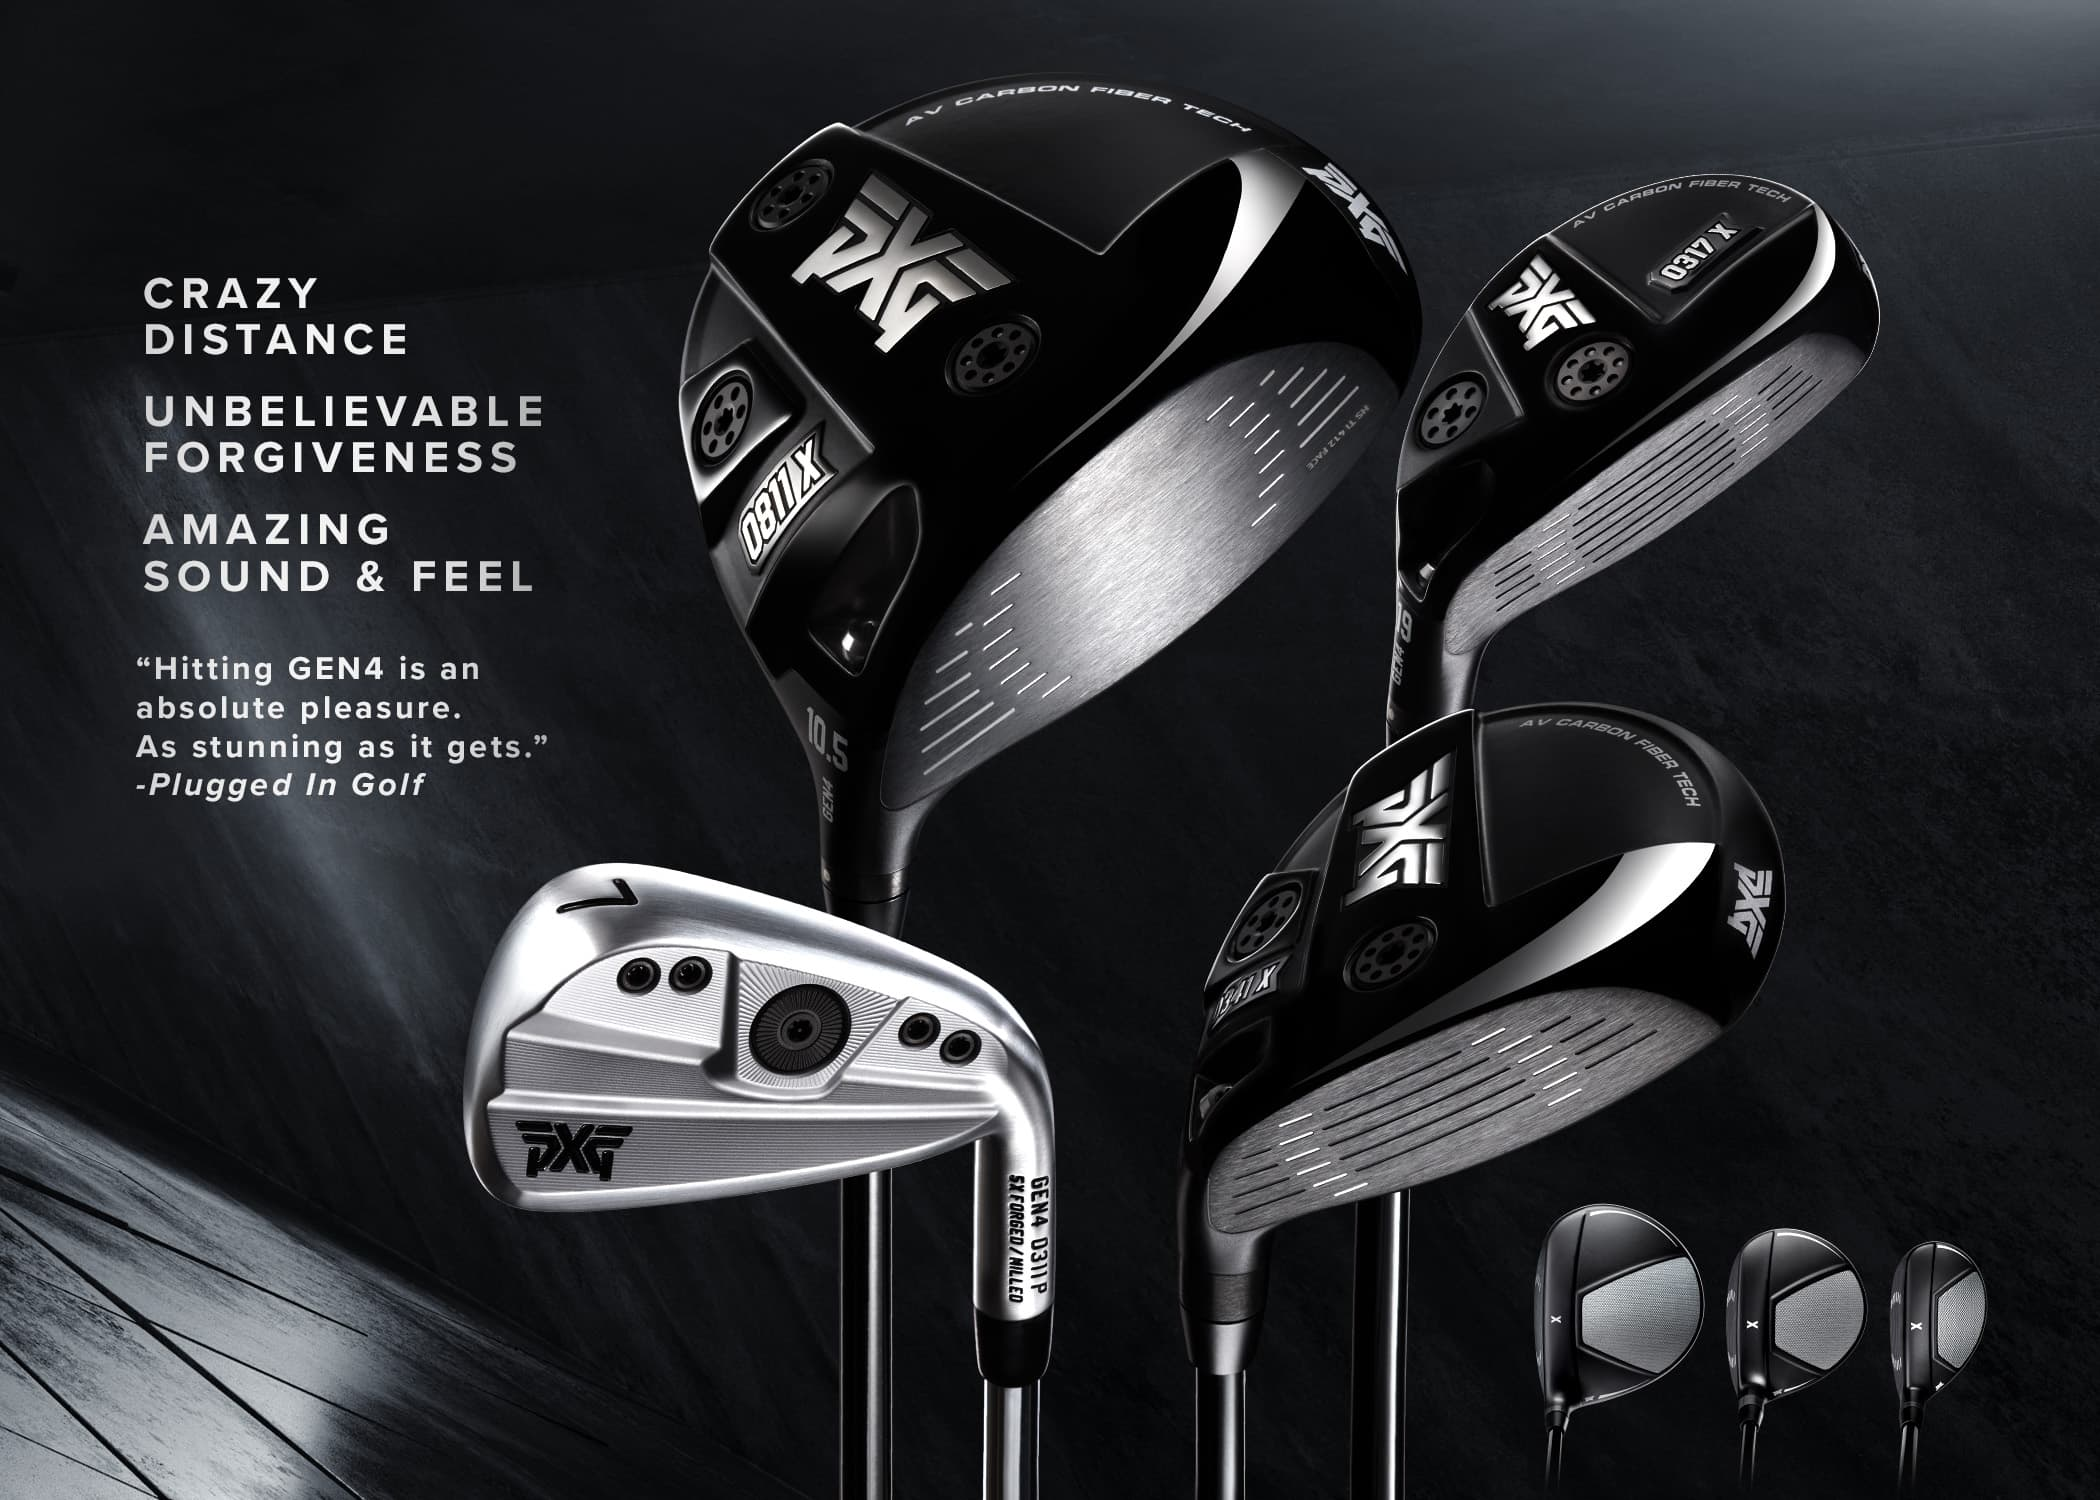 Quote: Hitting GEN4 is an absolute pleasure. As stunning as it gets. Plugged In Golf